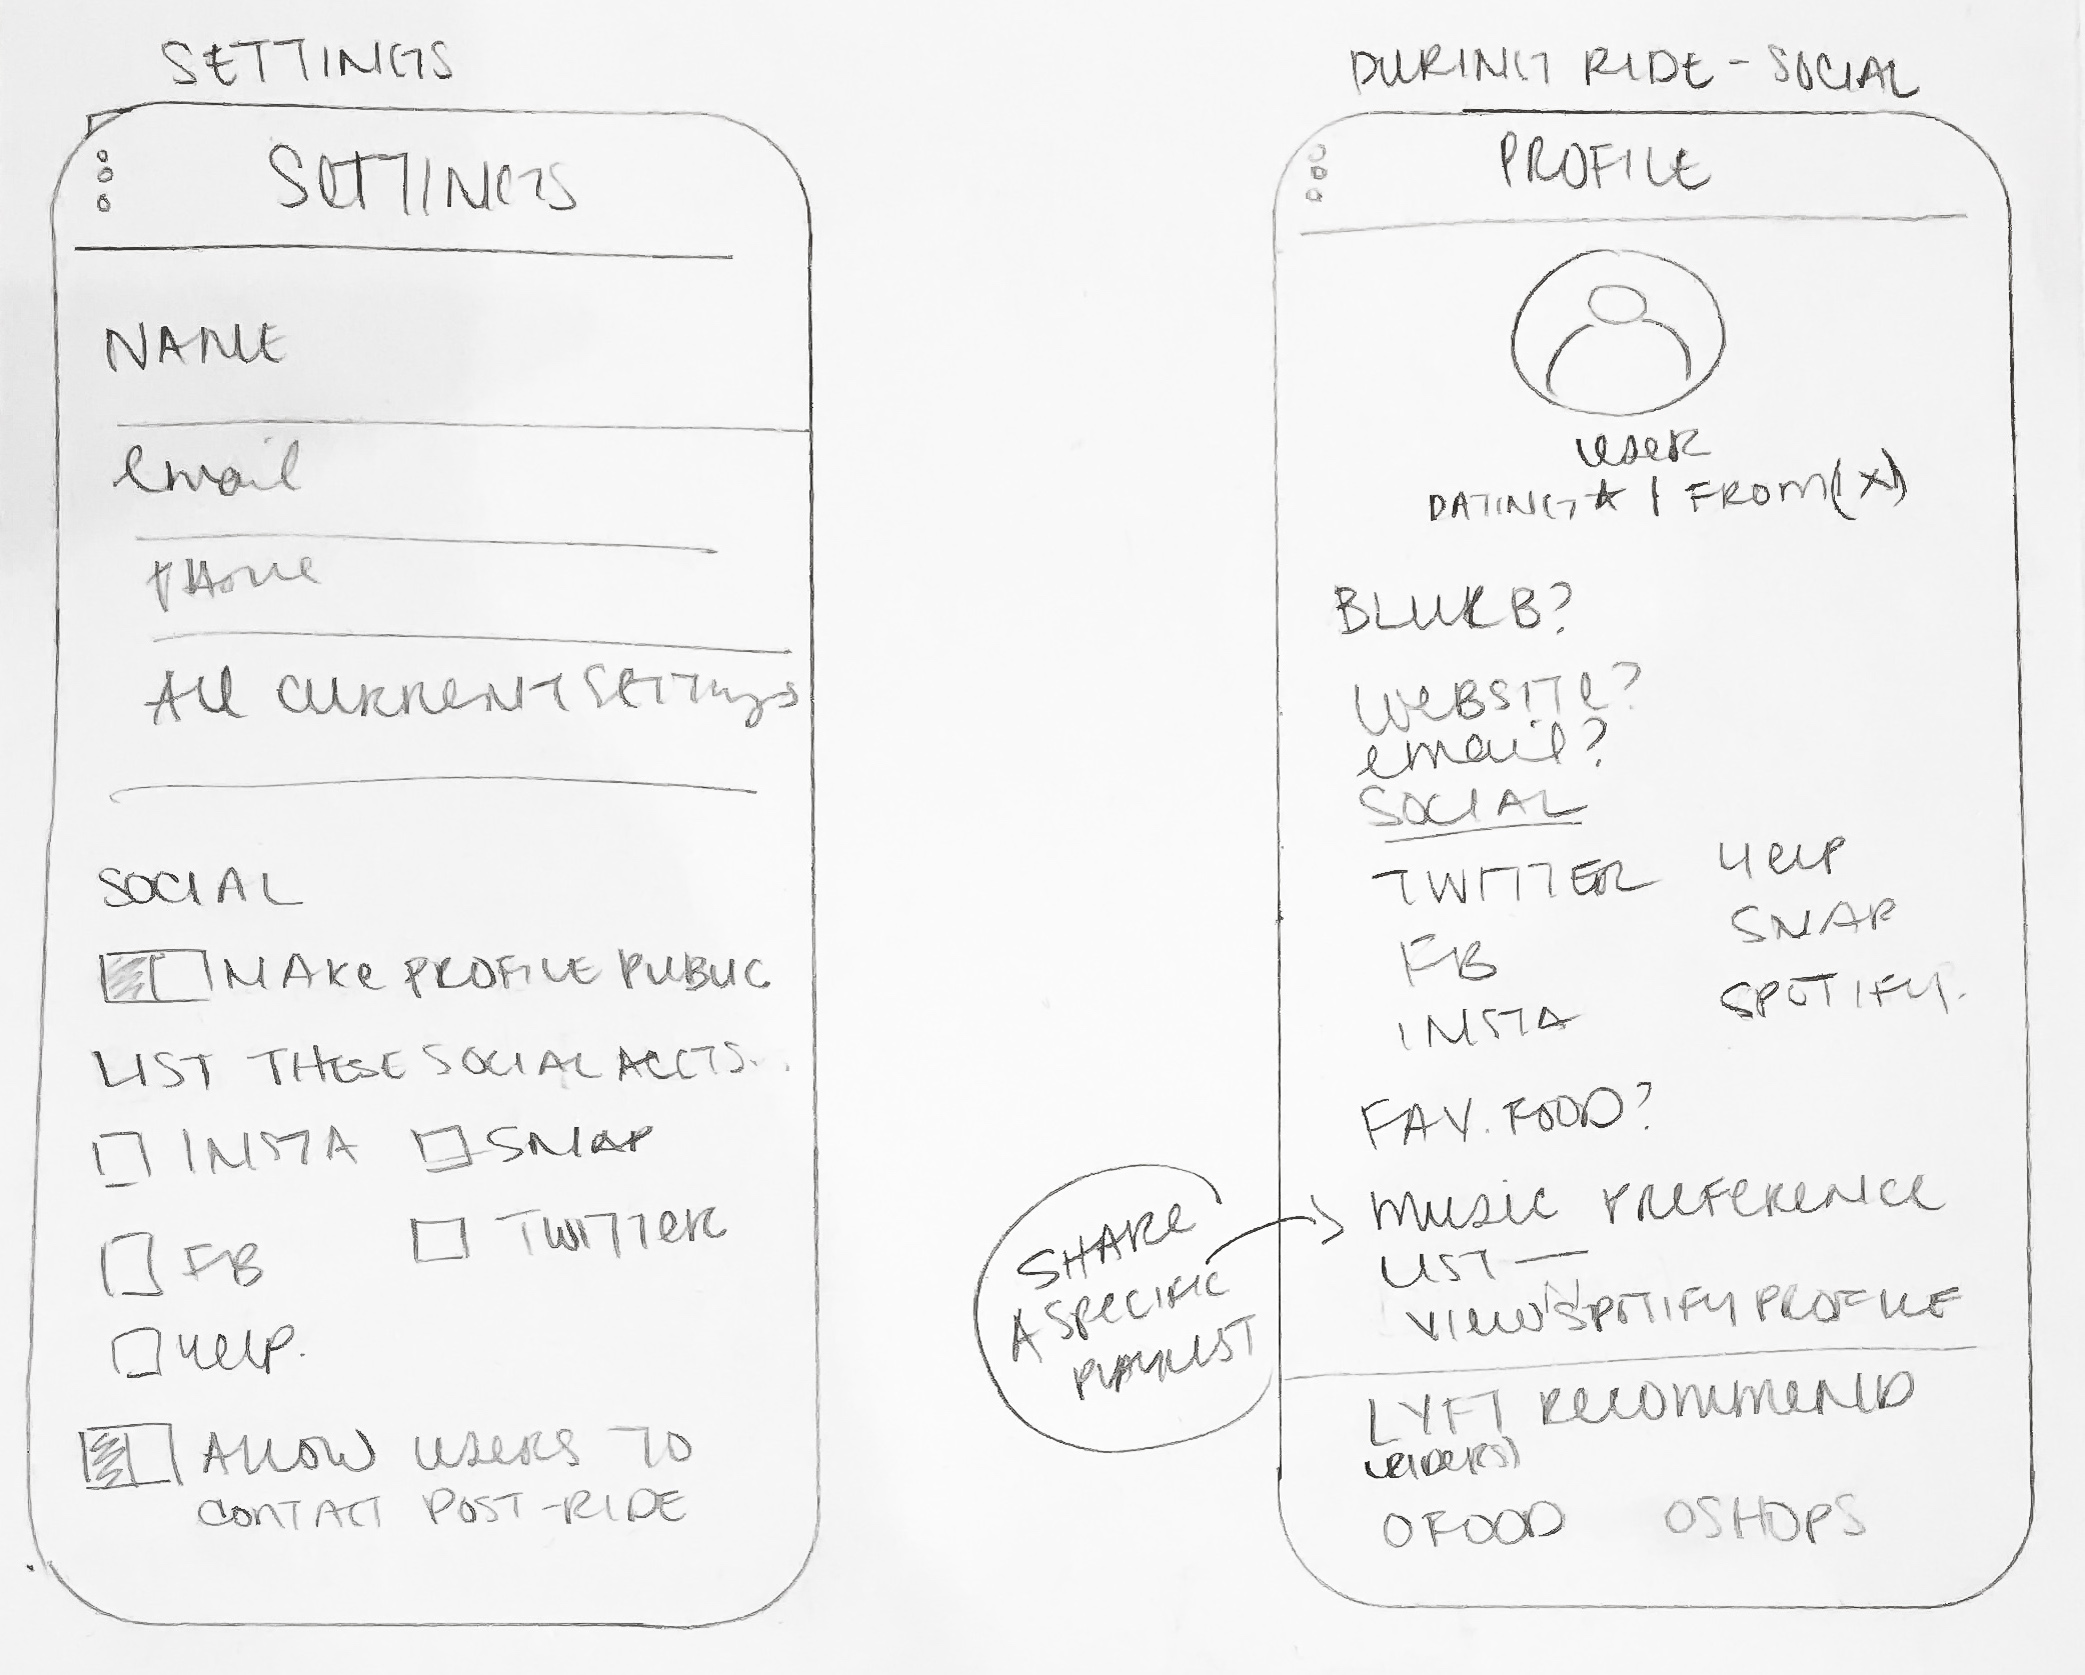 Lo-Fi Wireframes  - Settings menu including social settings + User profile w/ interests, social media and recommendations